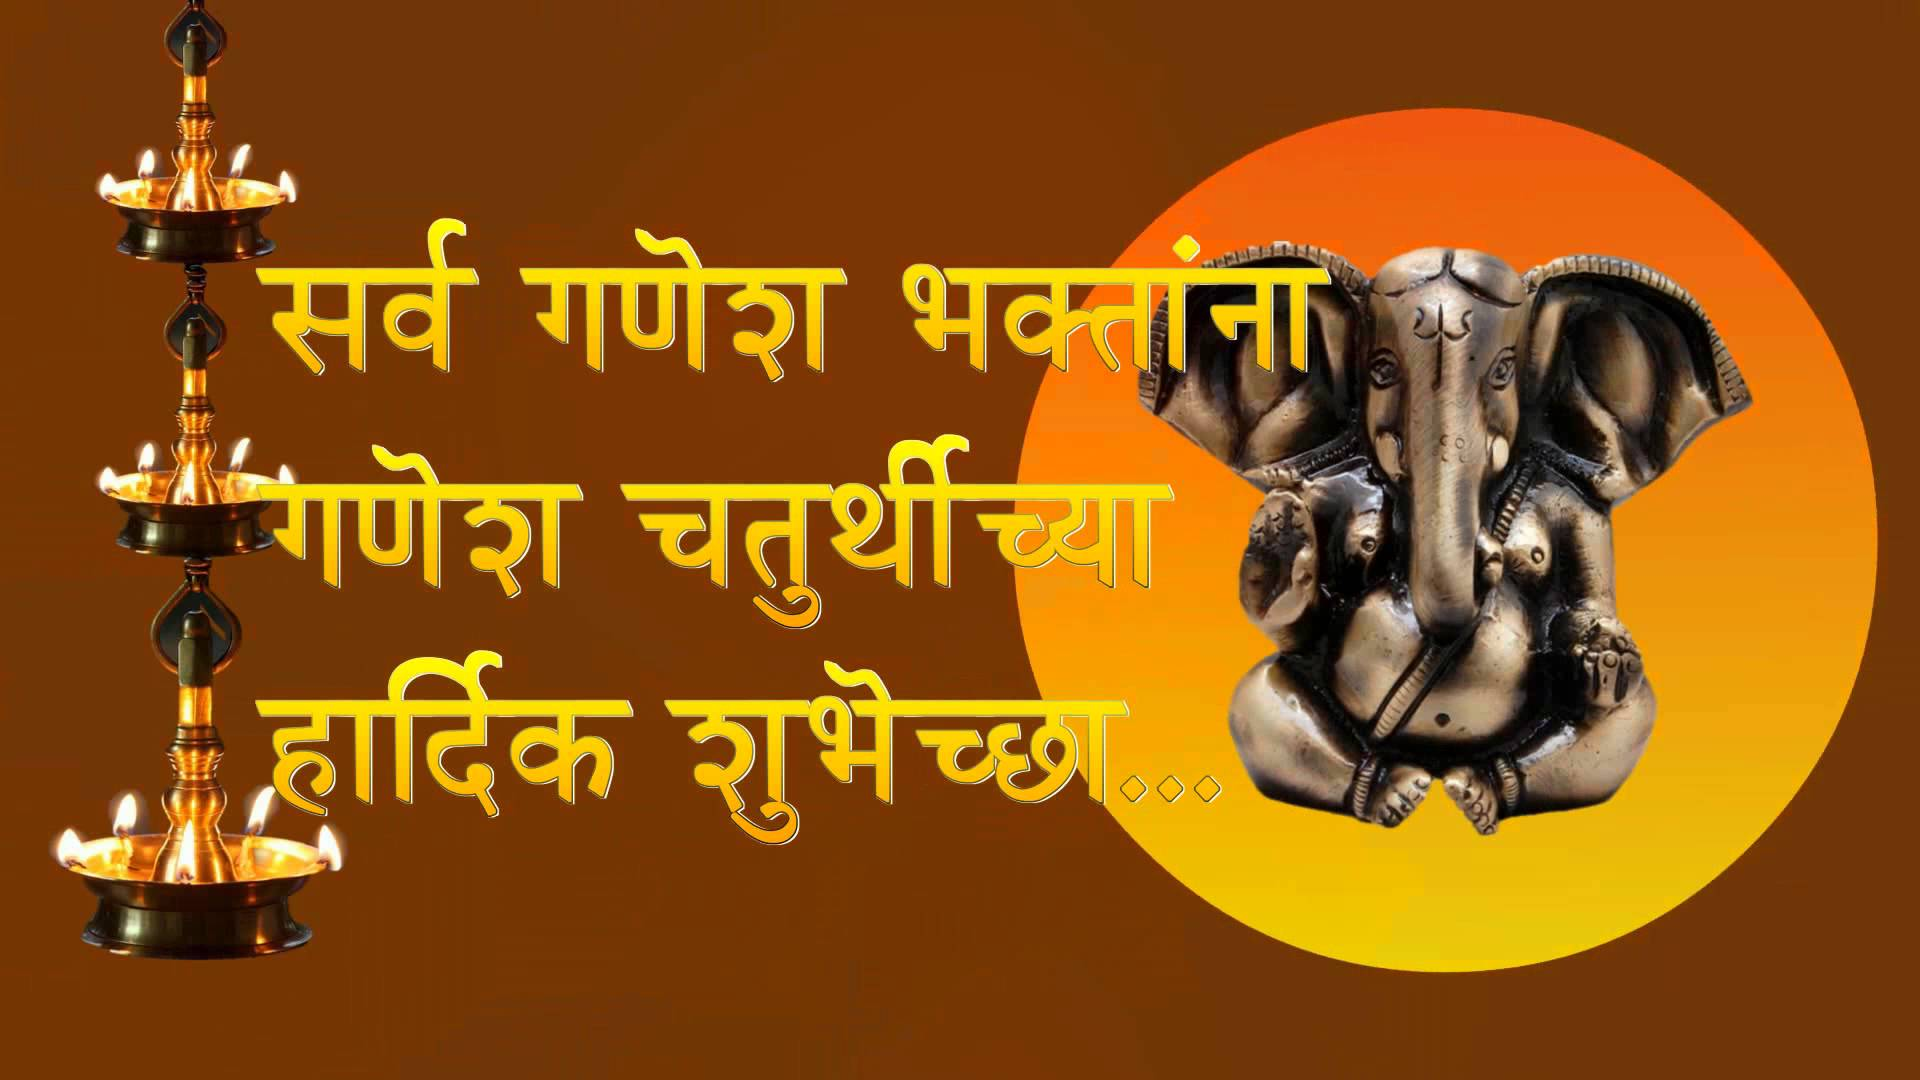 Ganesh Chaturthi Marathi Messages